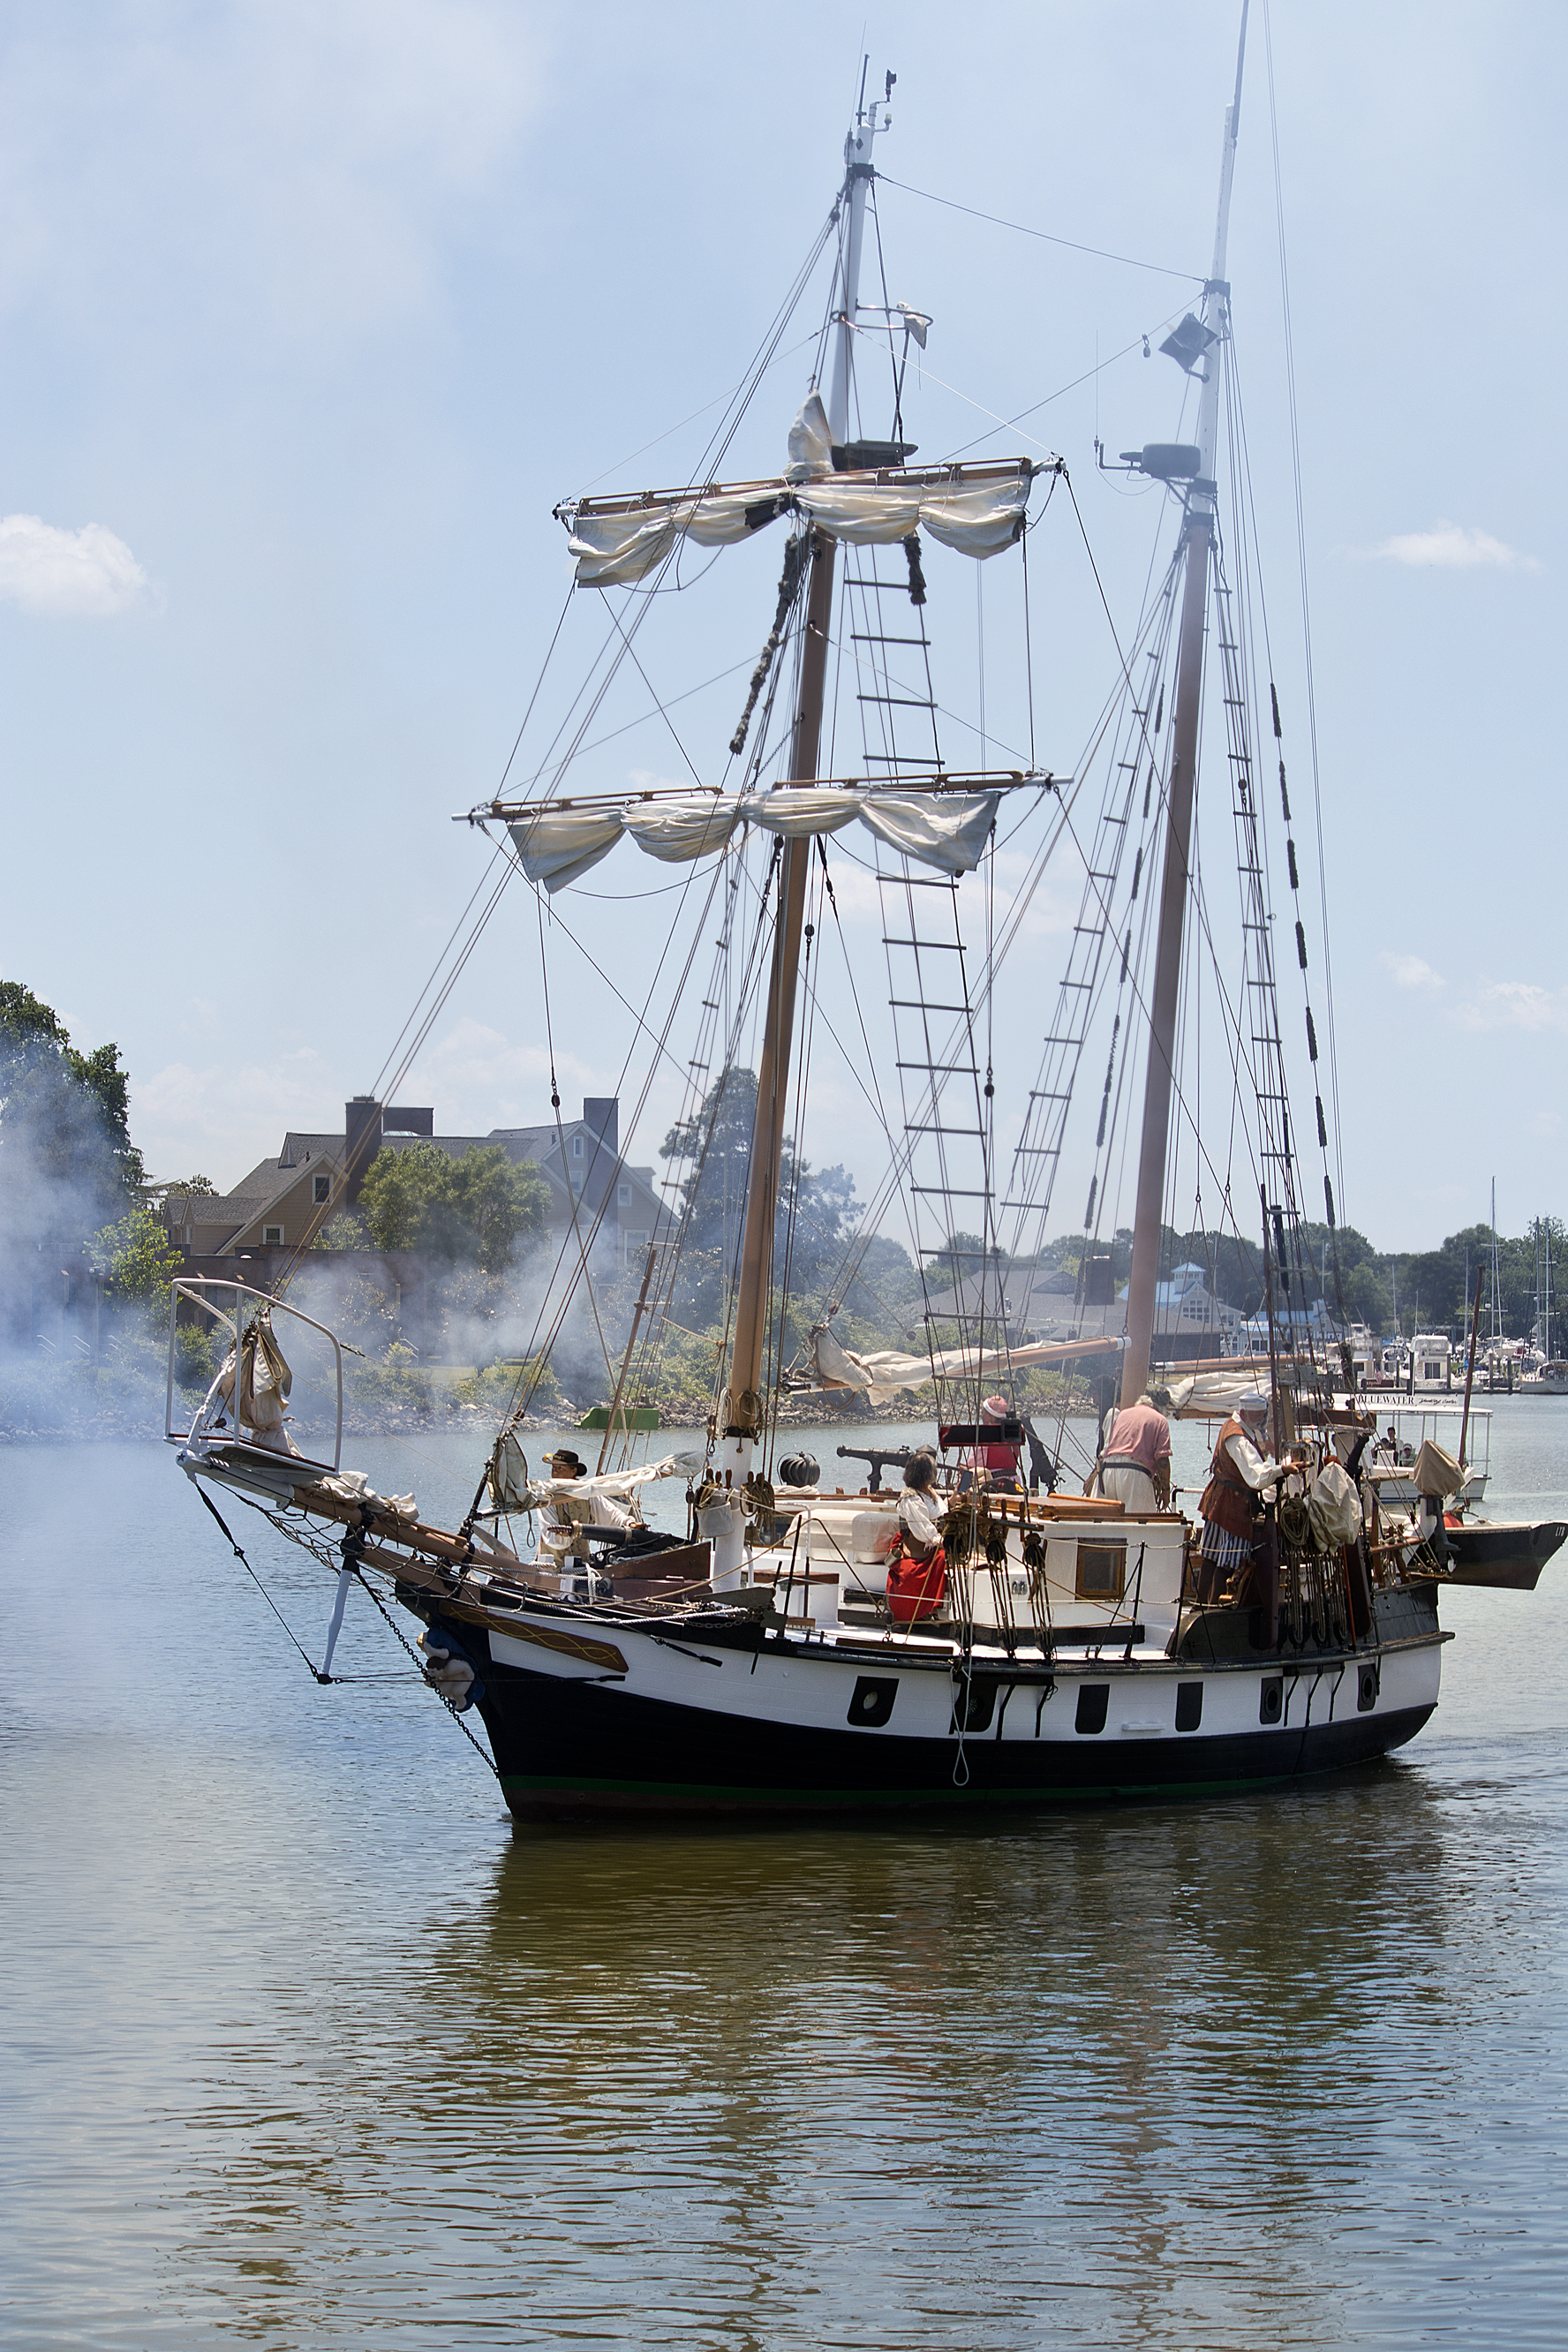 English pirate 'Blackbeard' to be navigated by U.S. Supreme Court over video piracy case